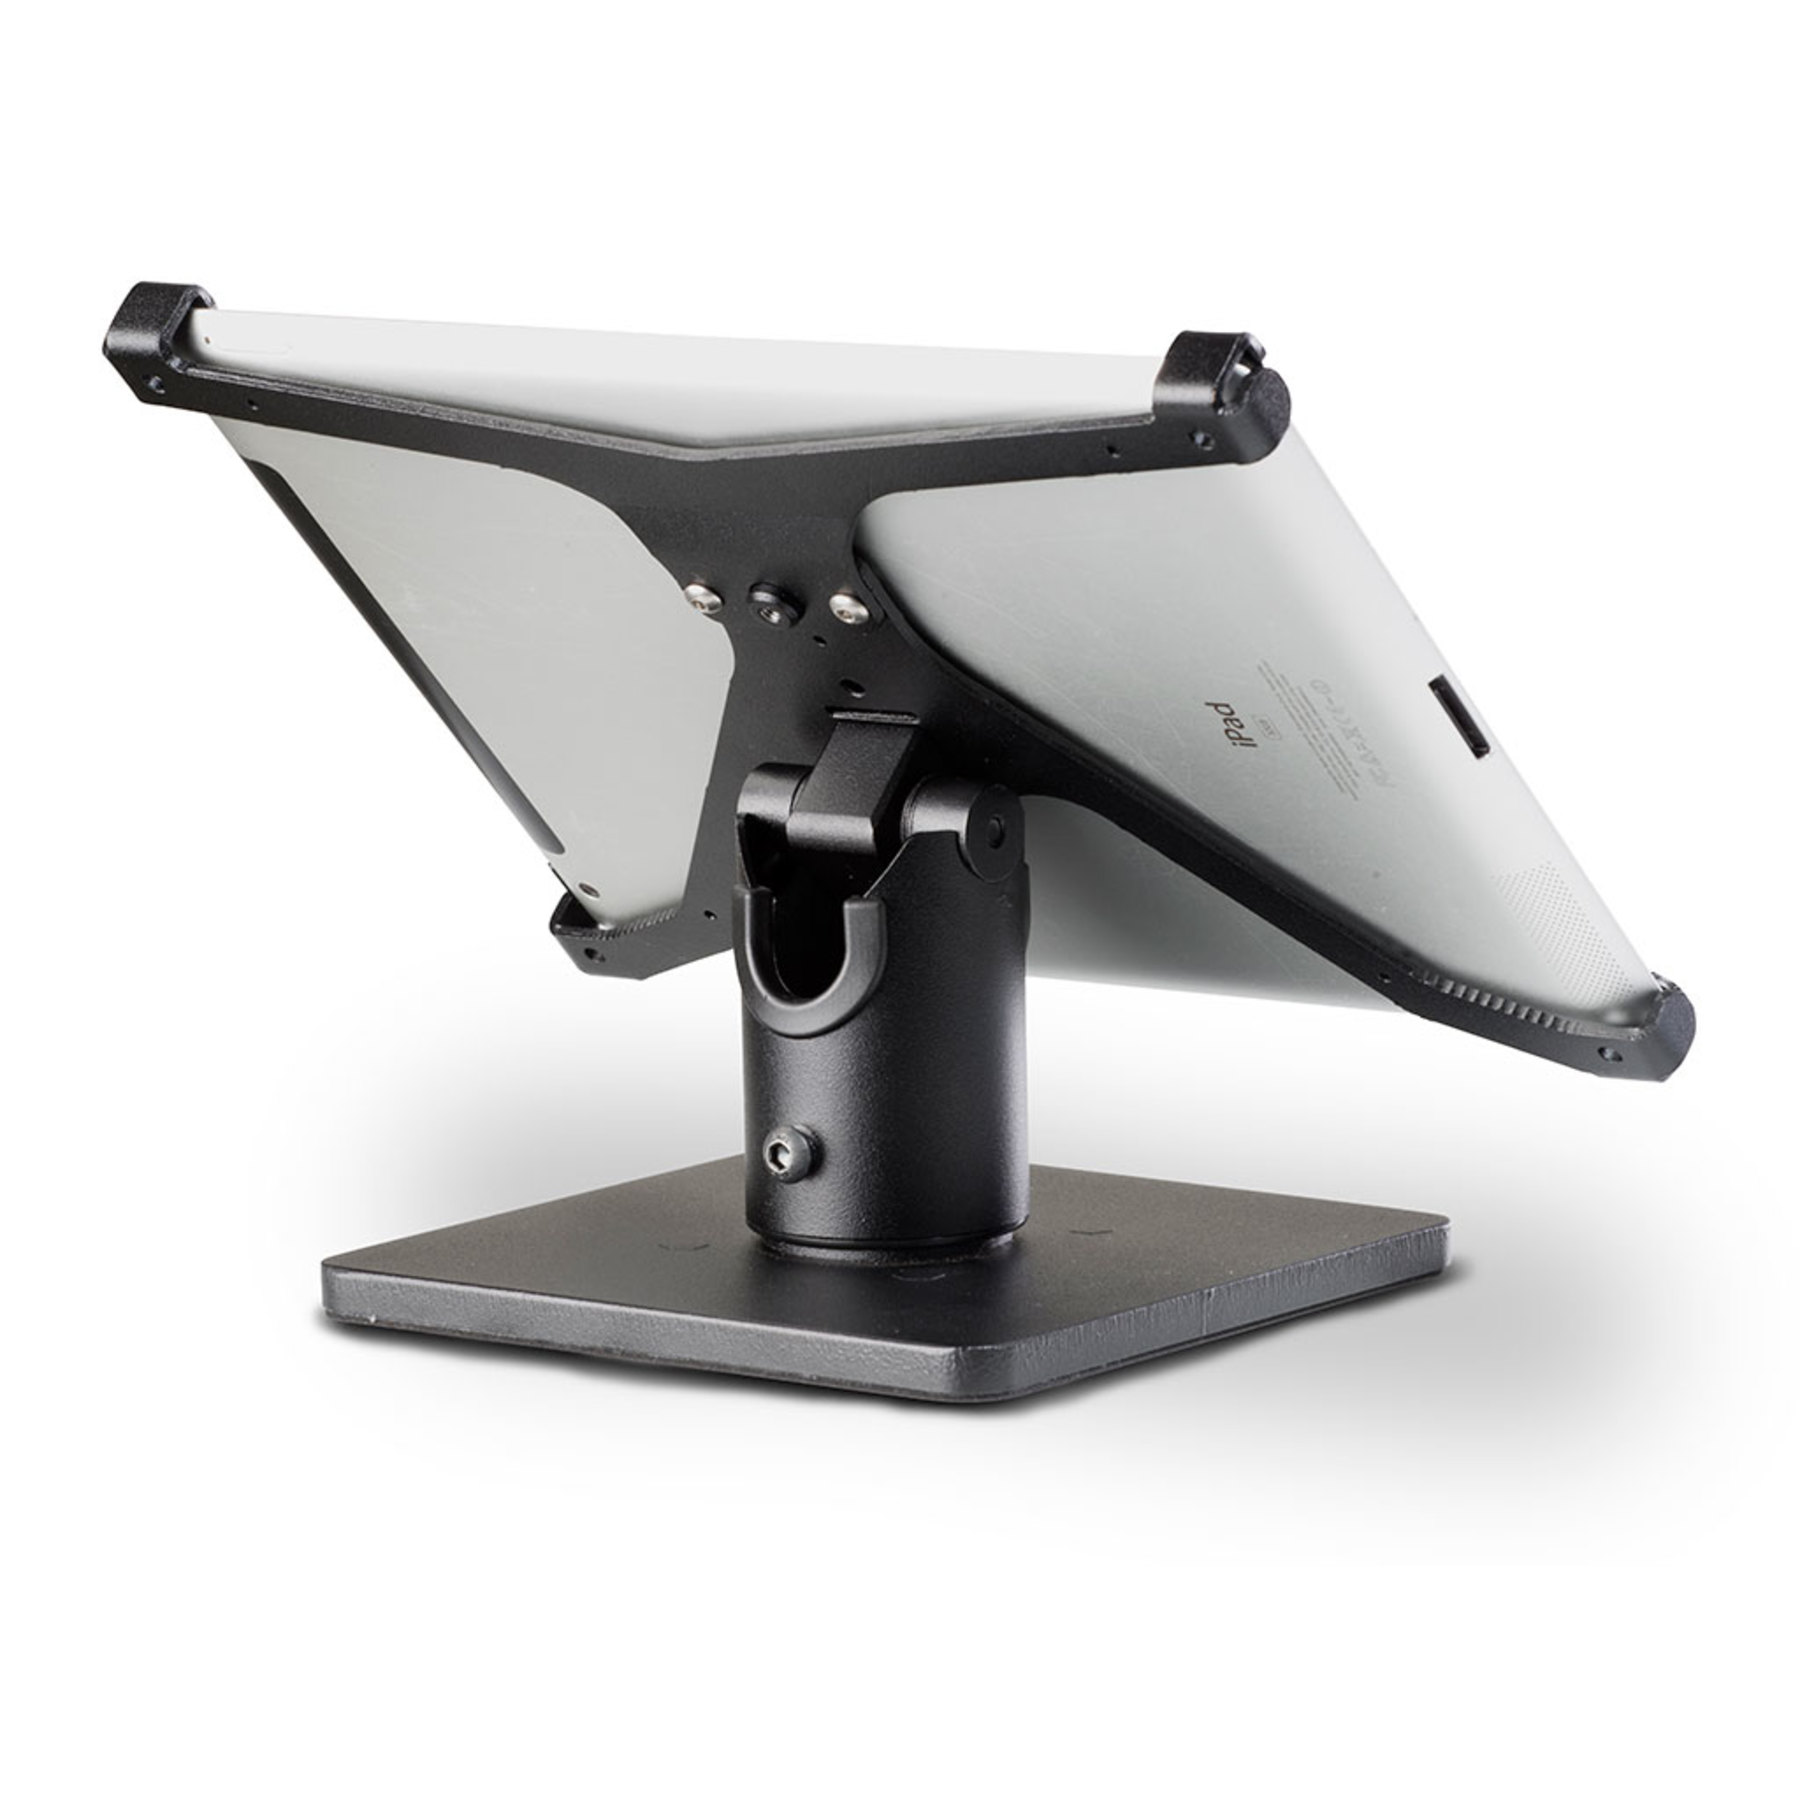 Spacepole X Frame Secure Ipad Tablet Stand Cash Drawers